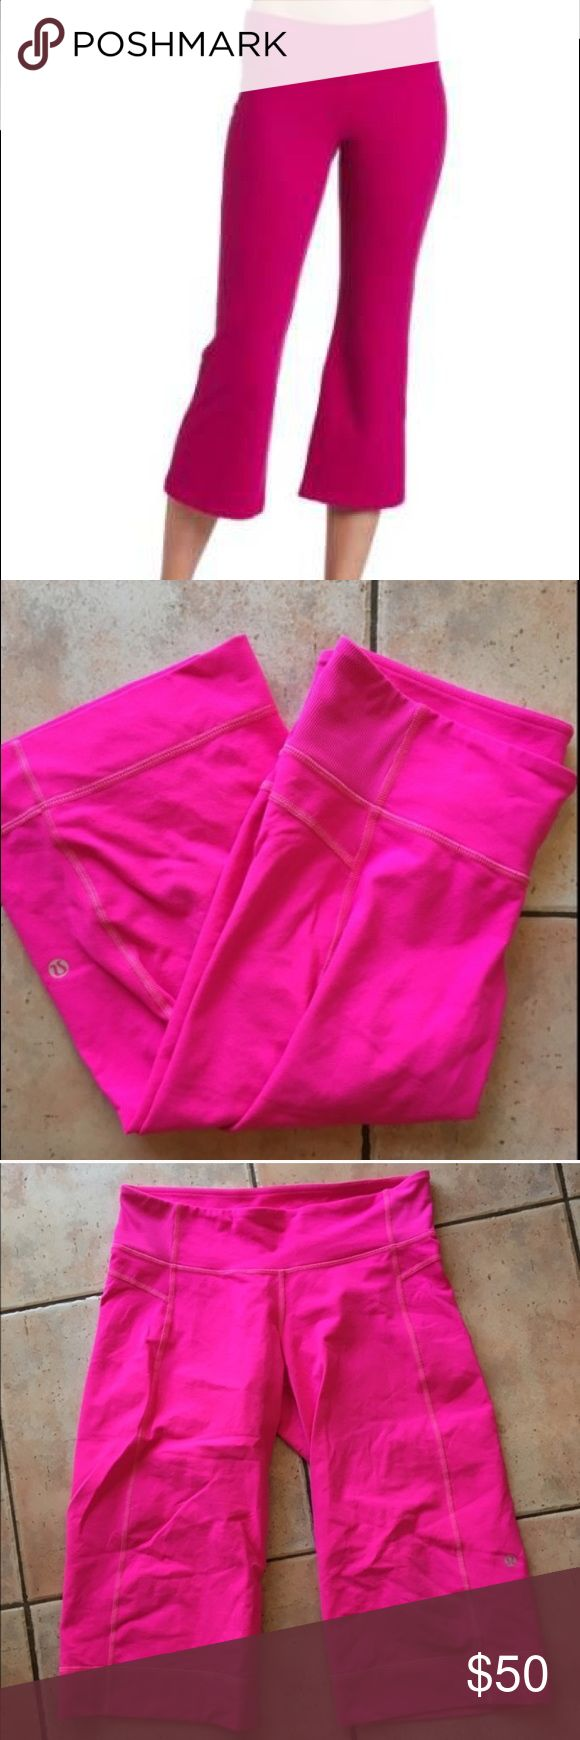 Lululemon Pink Crop Flare Yoga Pants Leggings Lululemon hot pink yoga pants. The color is so fun. Size 8, slight flare, and cropped. Only worn twice lululemon athletica Pants Leggings